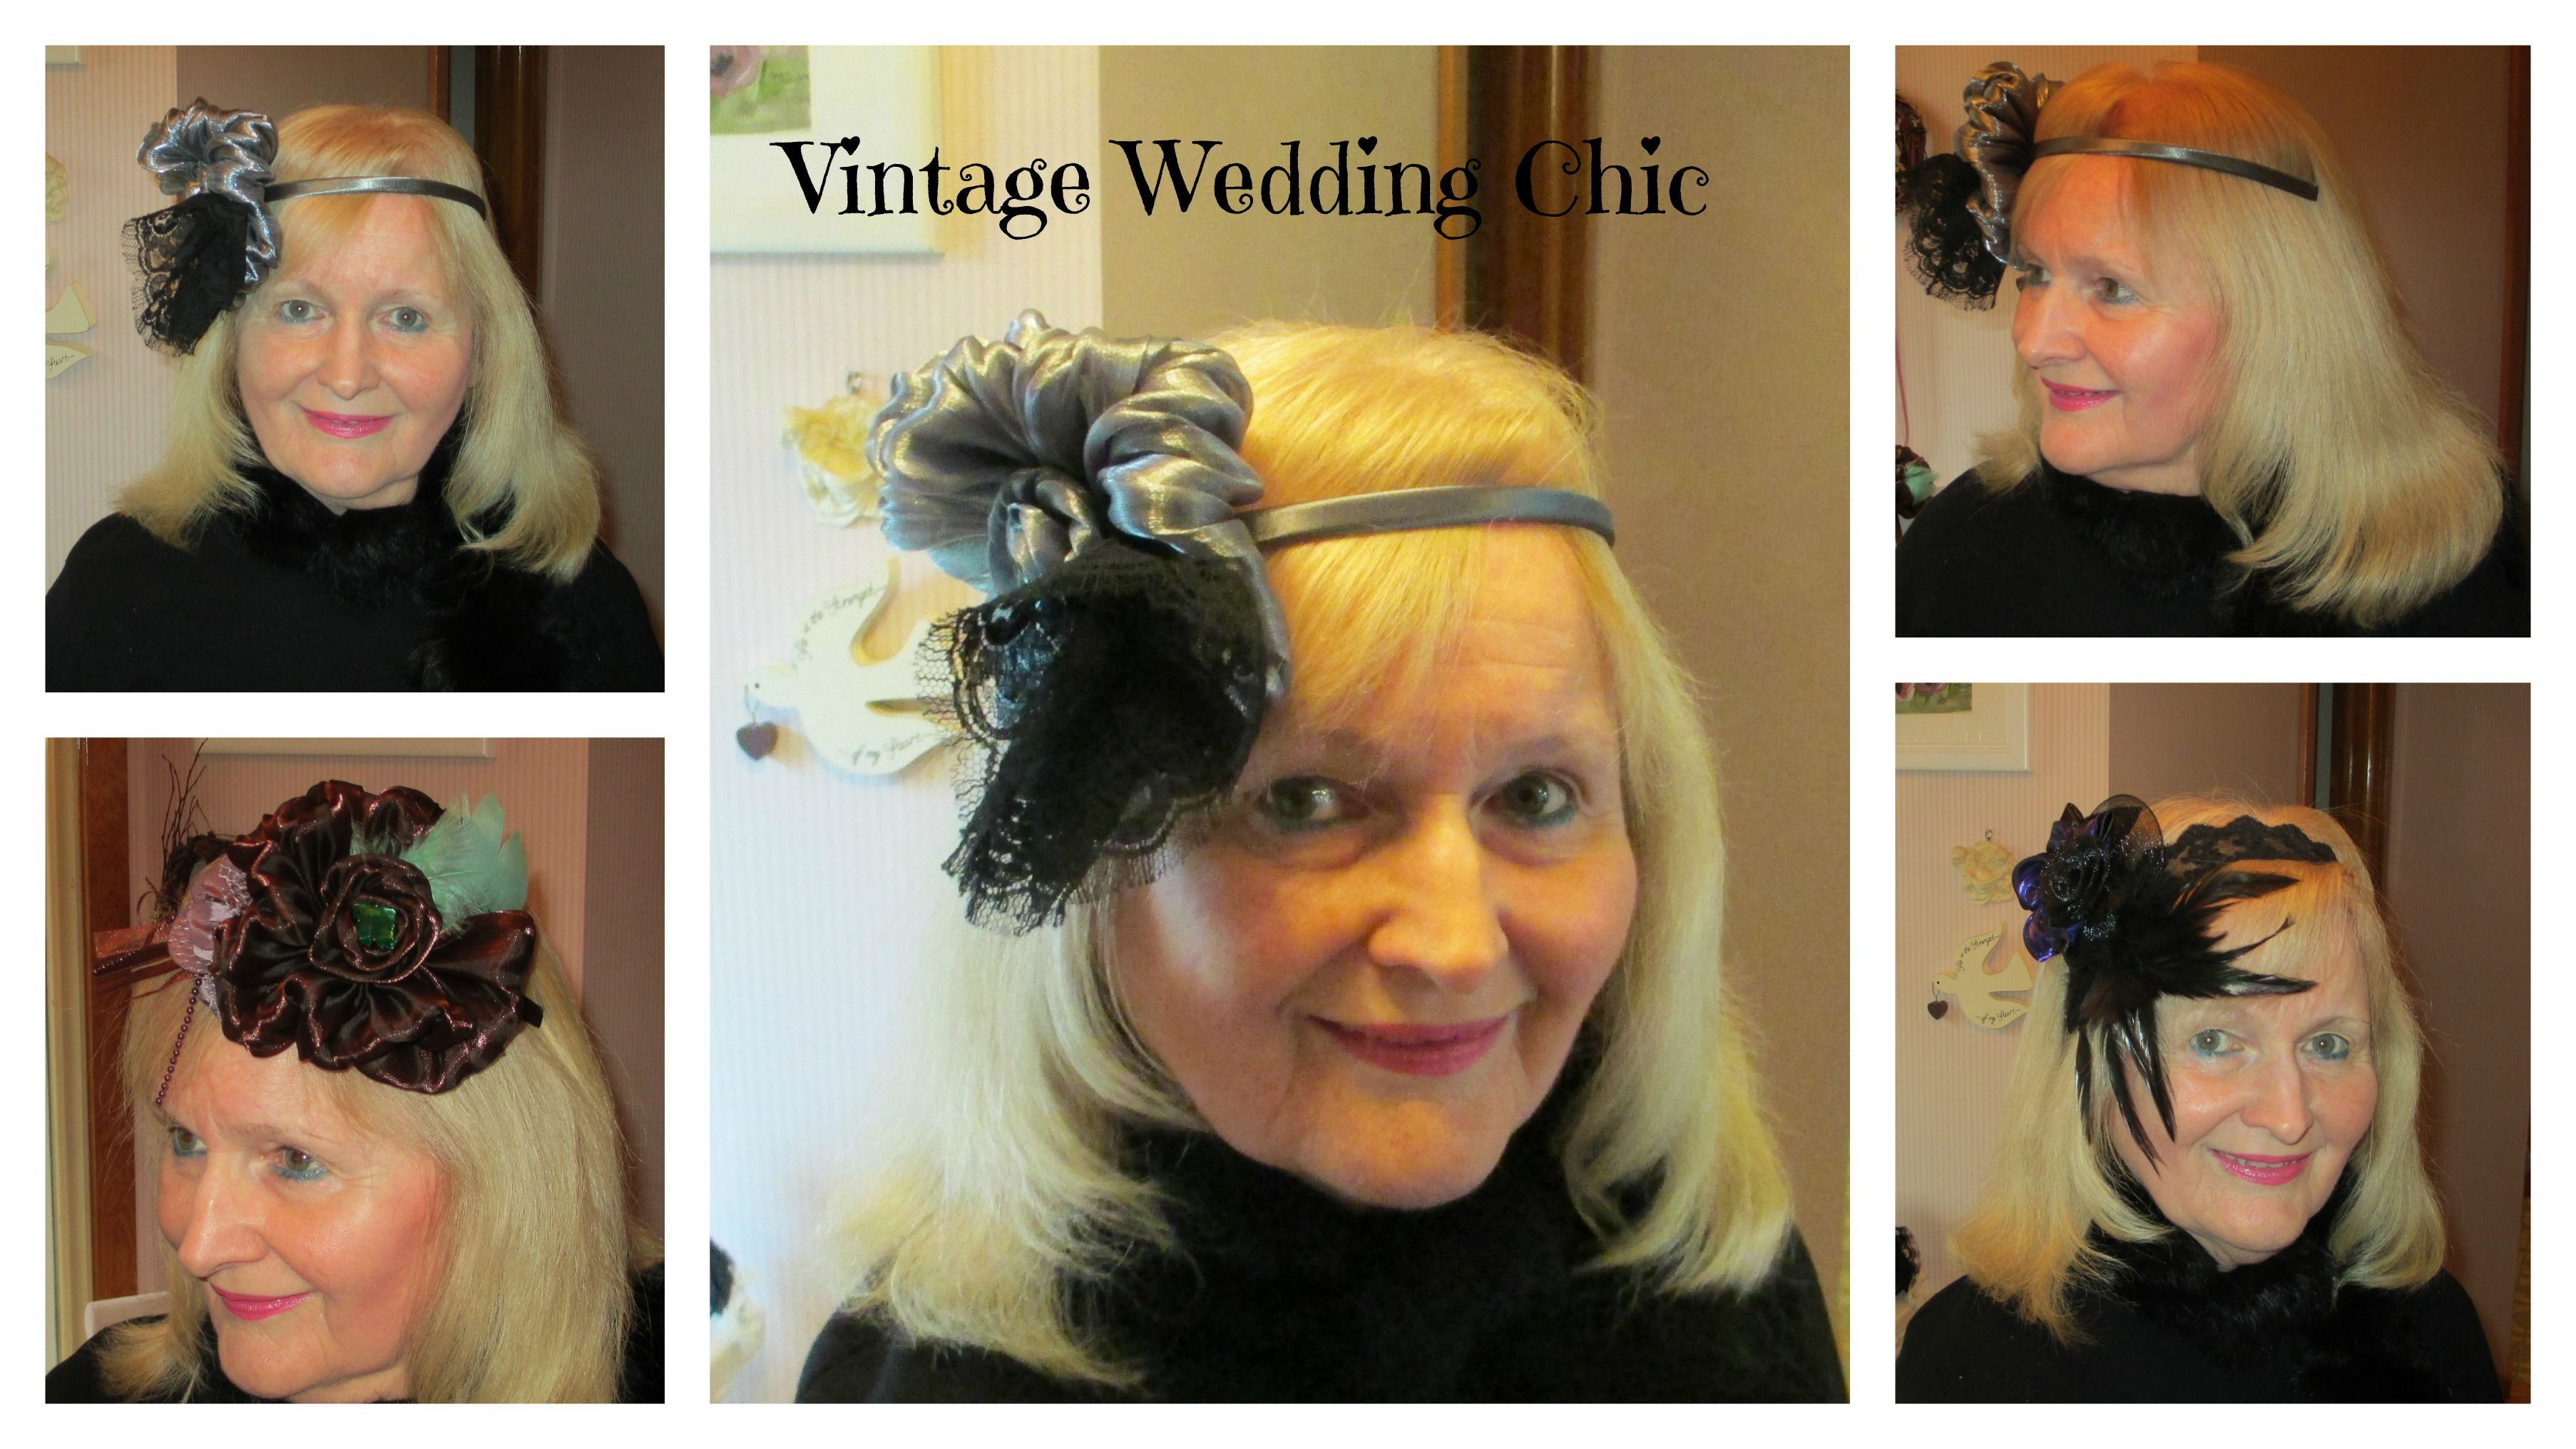 Vintage style ~ Fascinator ~ Elaborate hairstyles of the day!